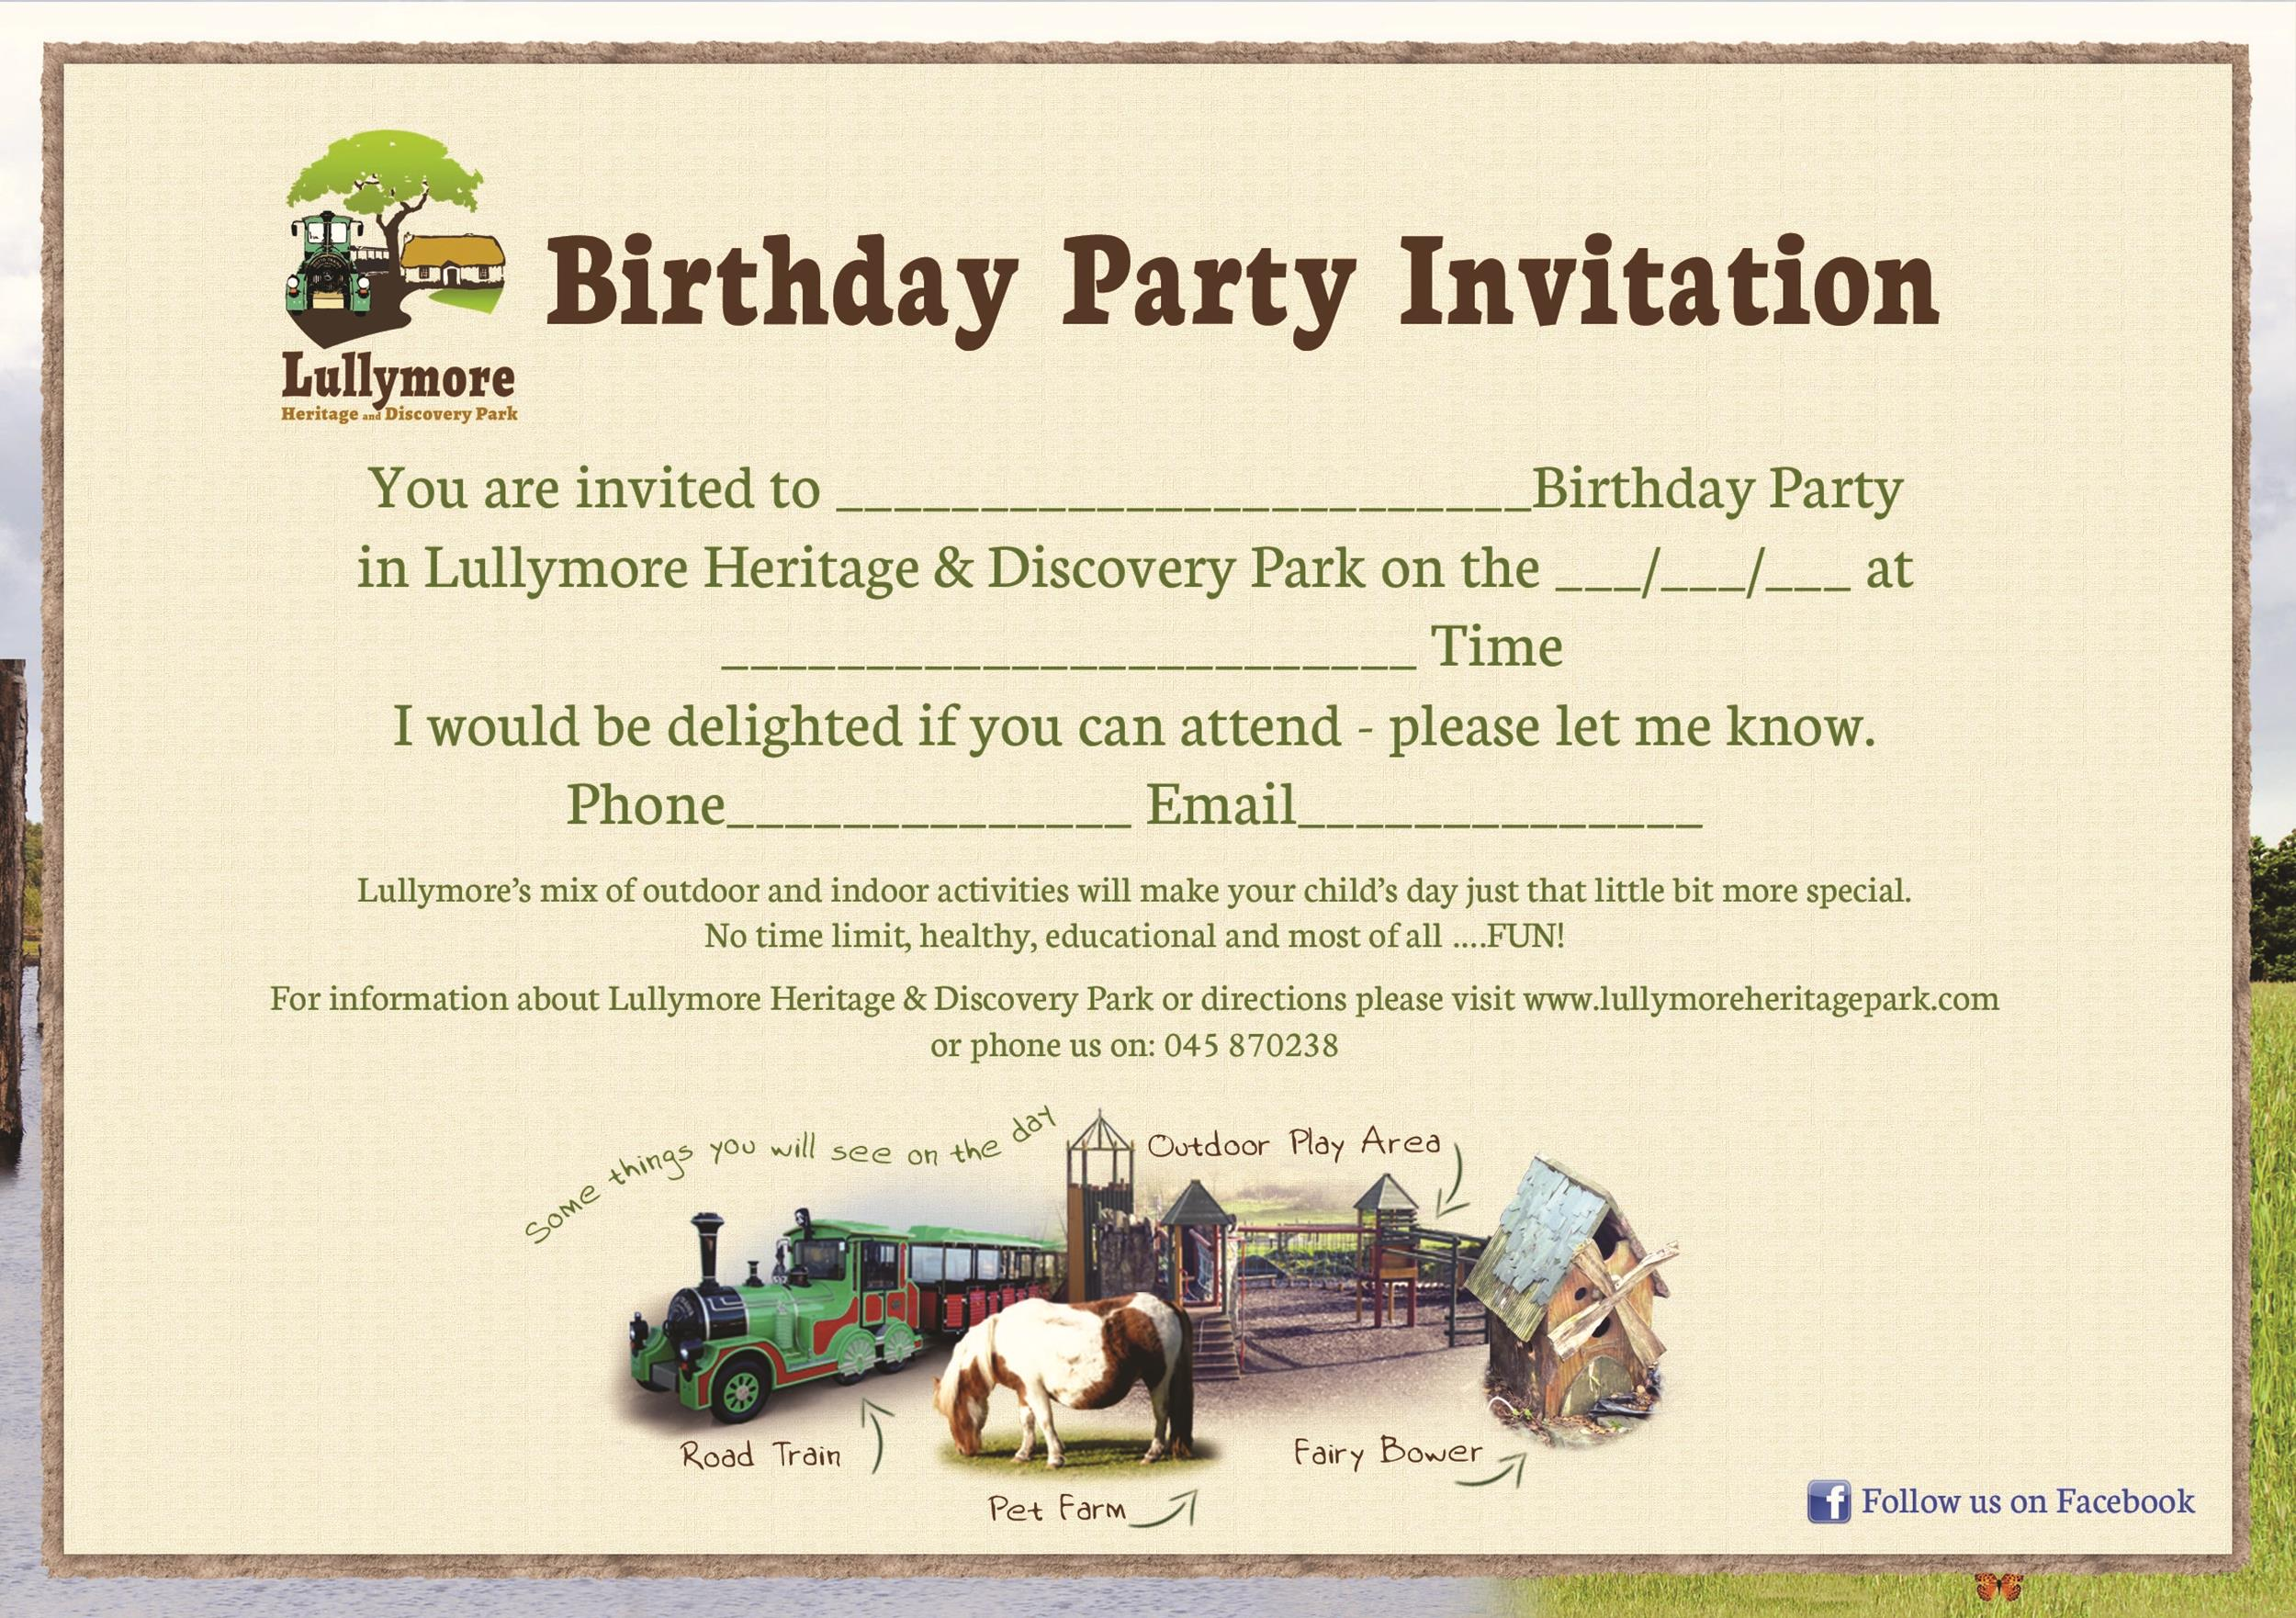 Free Birthday Party Invitation Templates Template Lab - Email to friend for birthday invitation